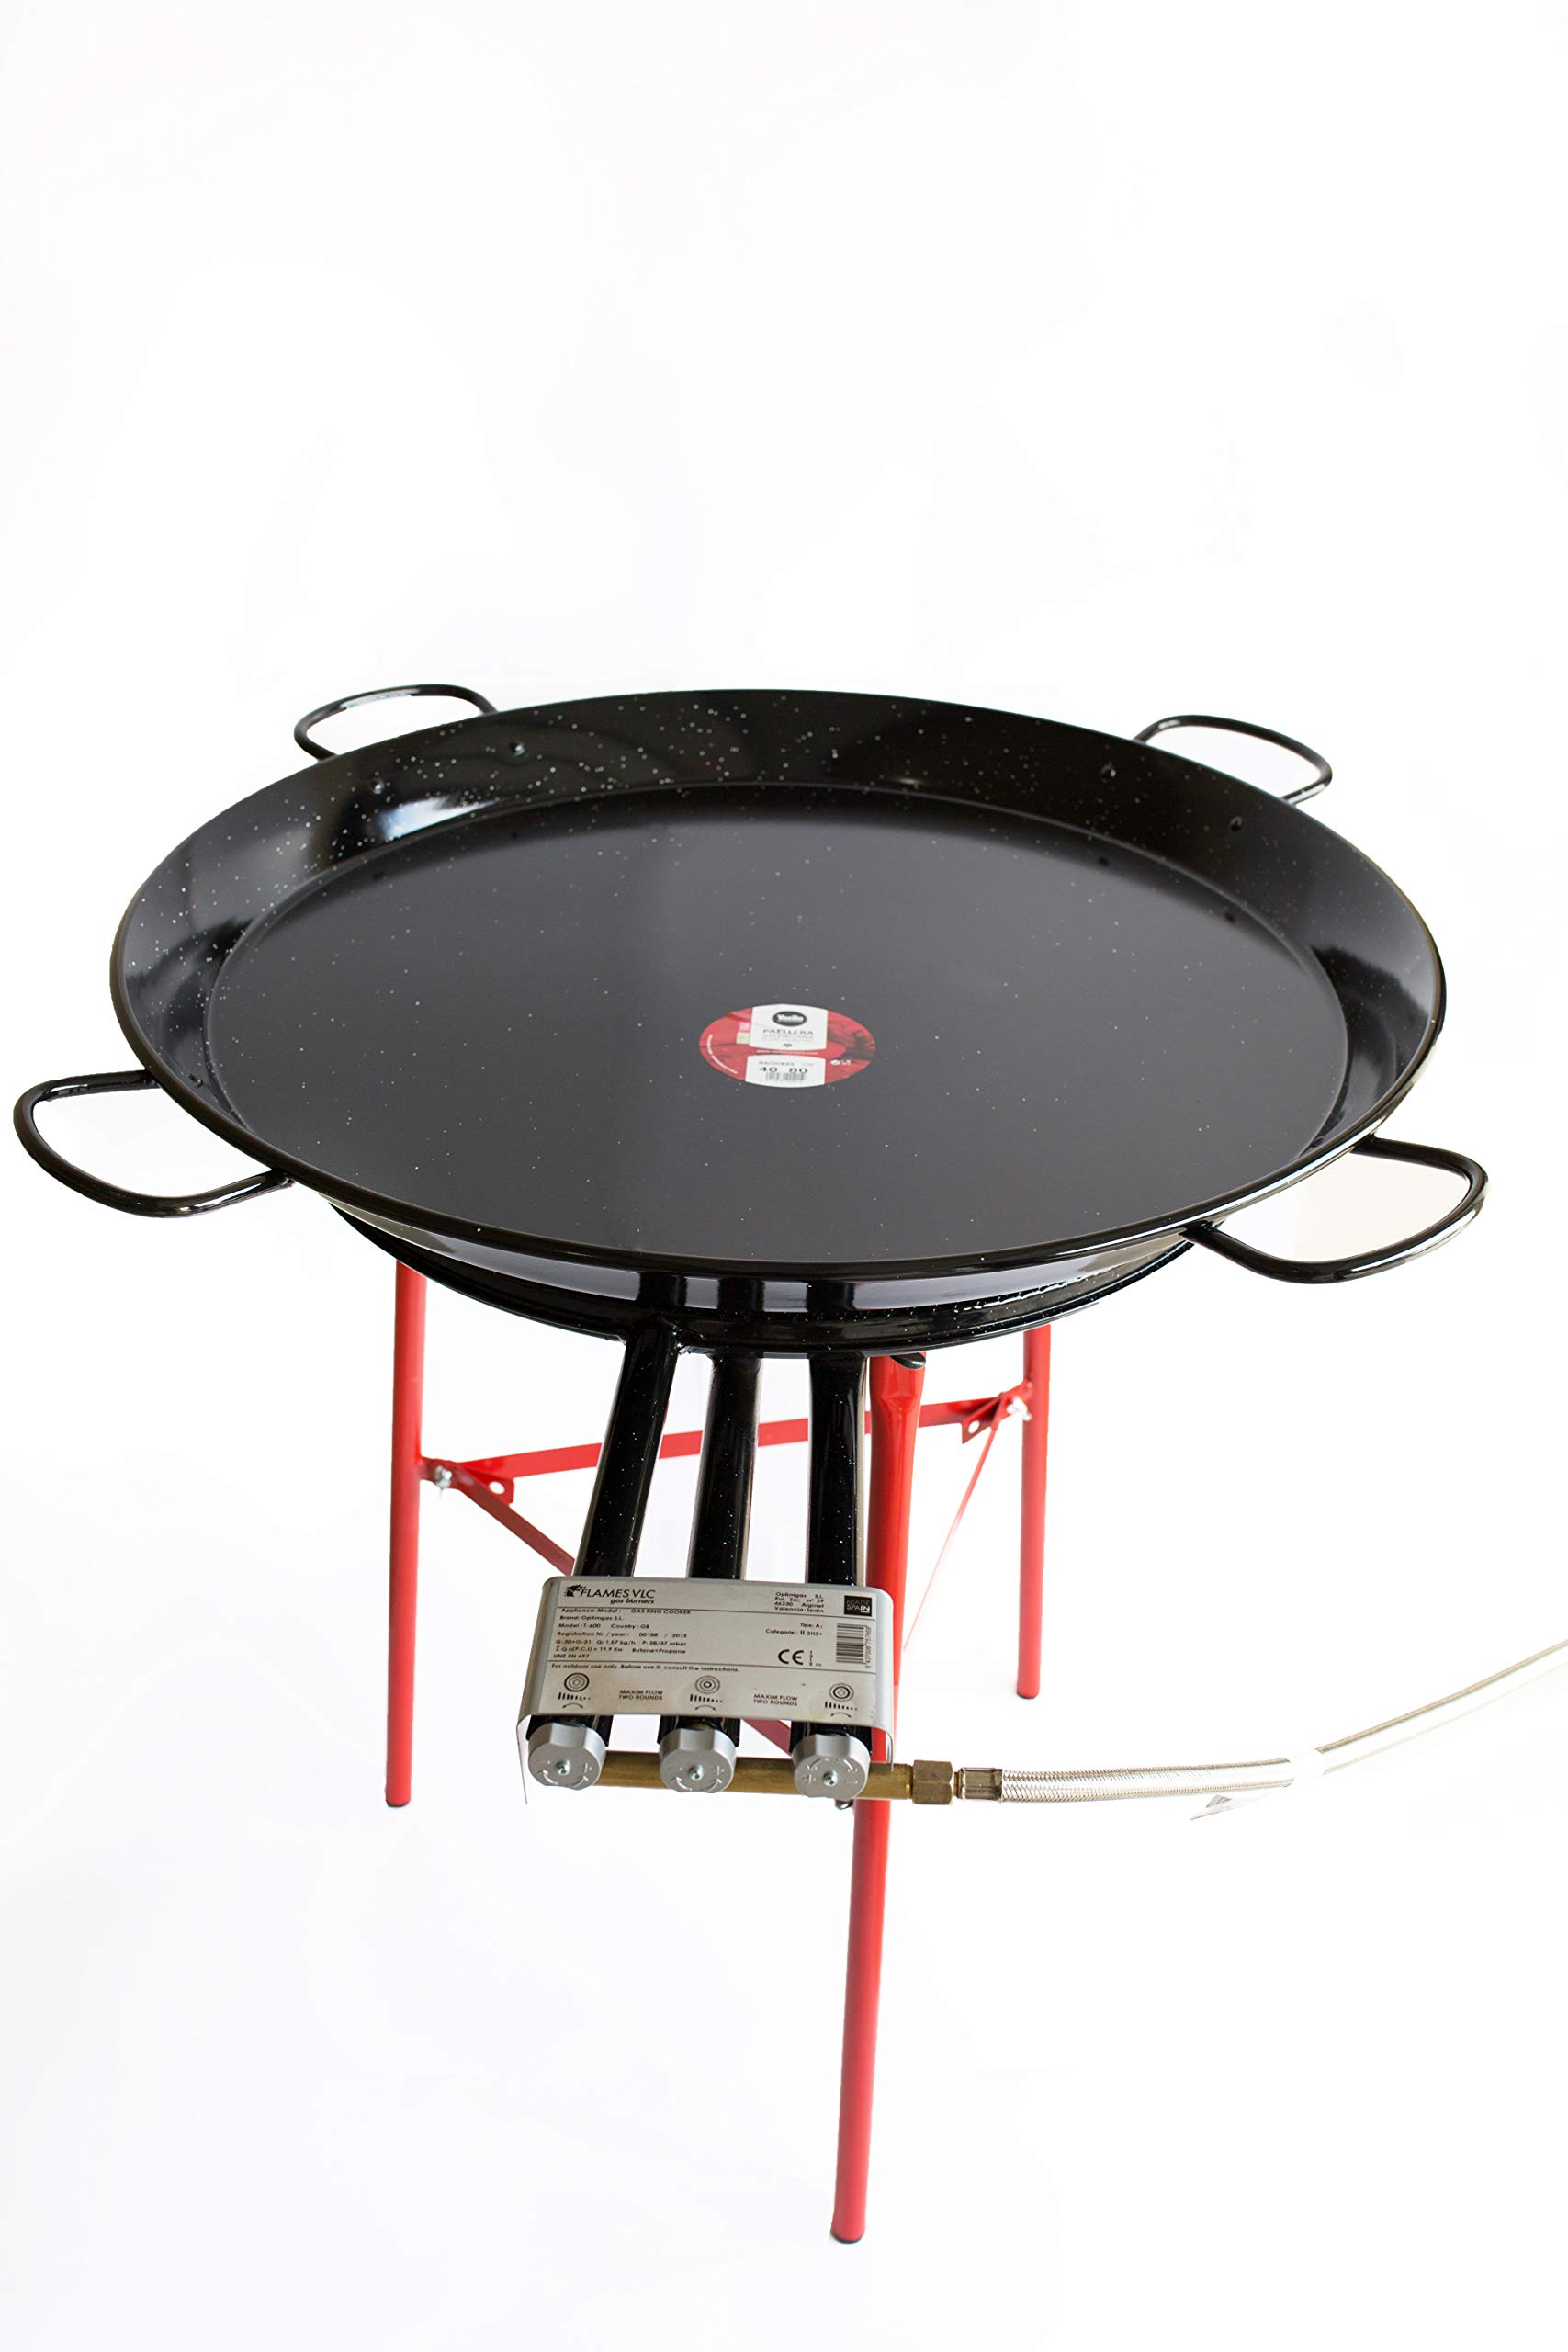 Paella Pan Enamelled + Paella Gas Burner and Stand Set - Complete Paella Kit for up to 40 Servings (Nonstick) by Vaello by Castevia Imports (Image #1)